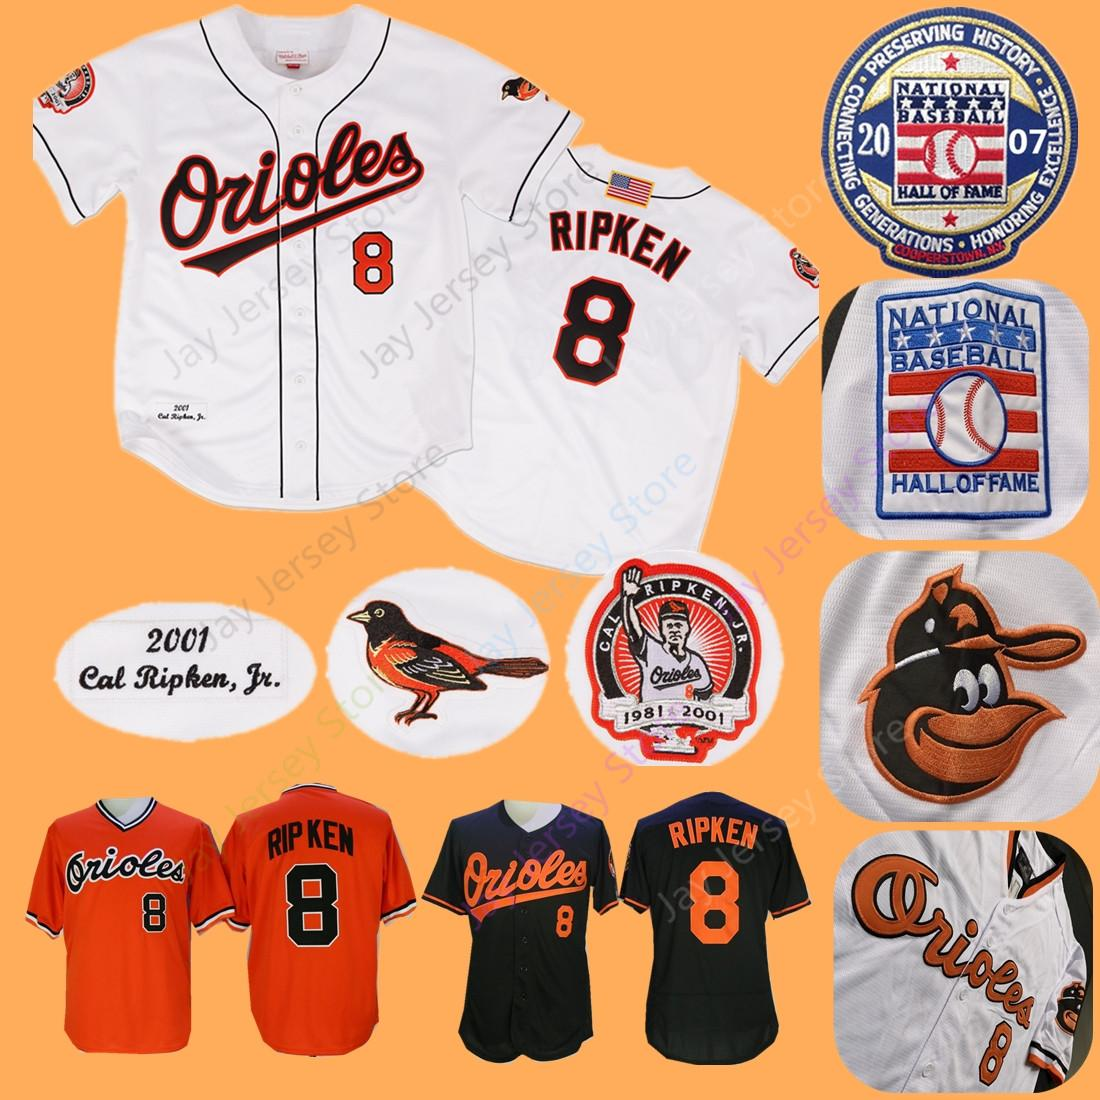 77470301daf 2019 Cal Ripken Jersey Cooperstown Orioles With 2007 Baseball Hall Of Fame  Patch Home Away 2001 Baltimore Jerseys From Morejersey